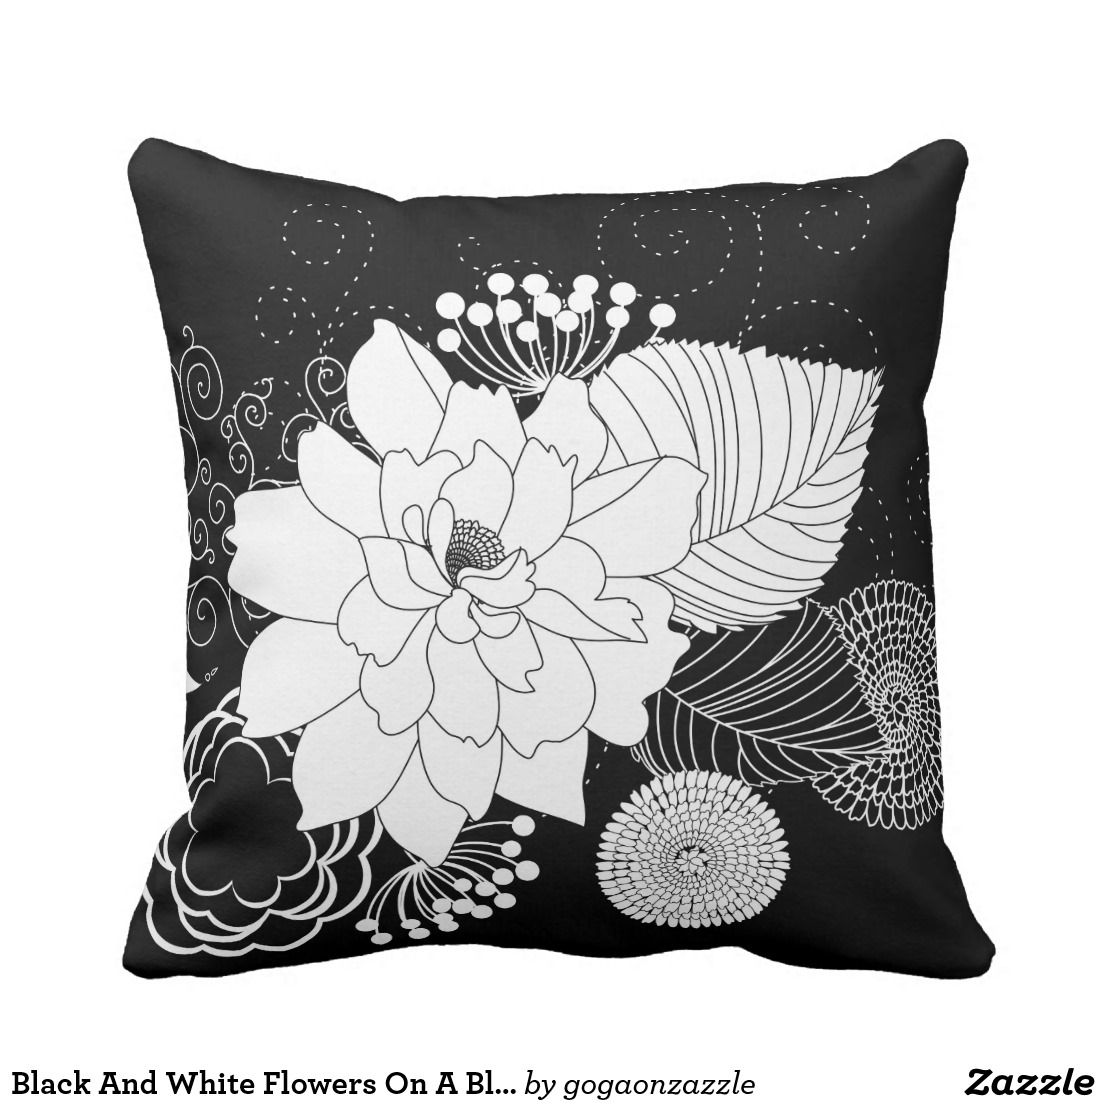 Black And White Flowers On A Black Background Throw Pillow Zazzle Com Black And White Flowers Throw Pillows White Throw Pillows